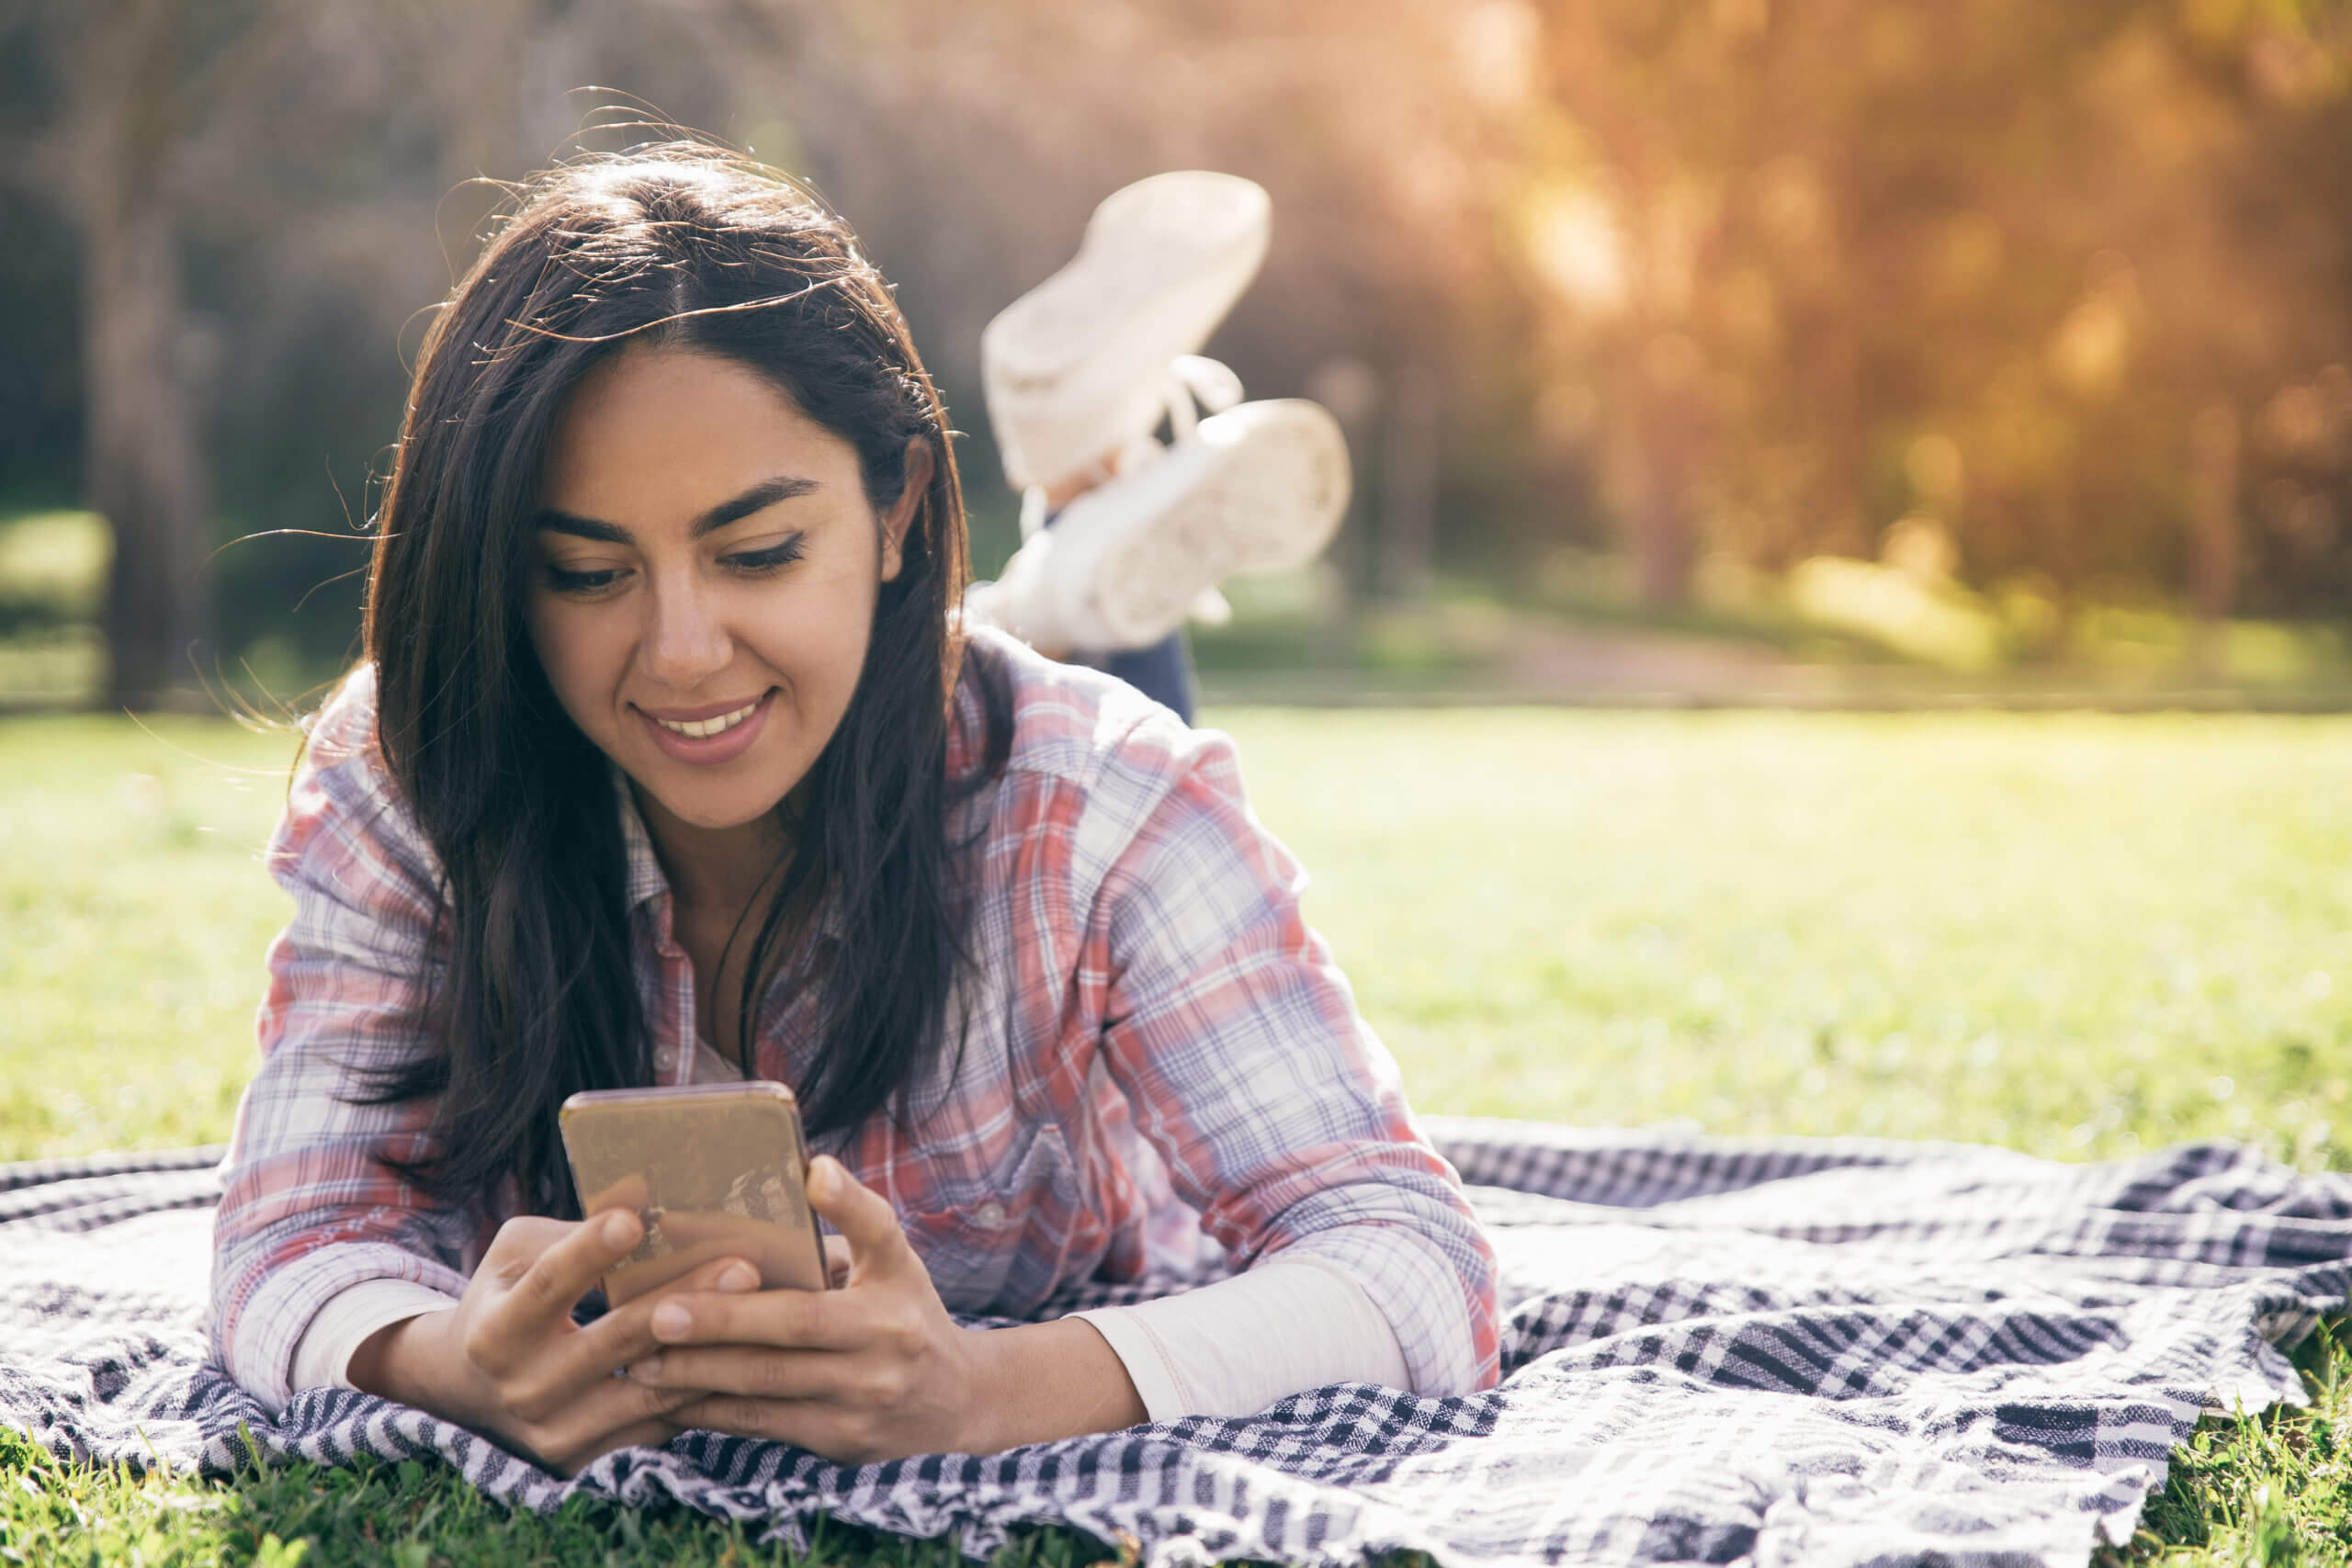 Smiling focused girl typing message on smartphone in park.